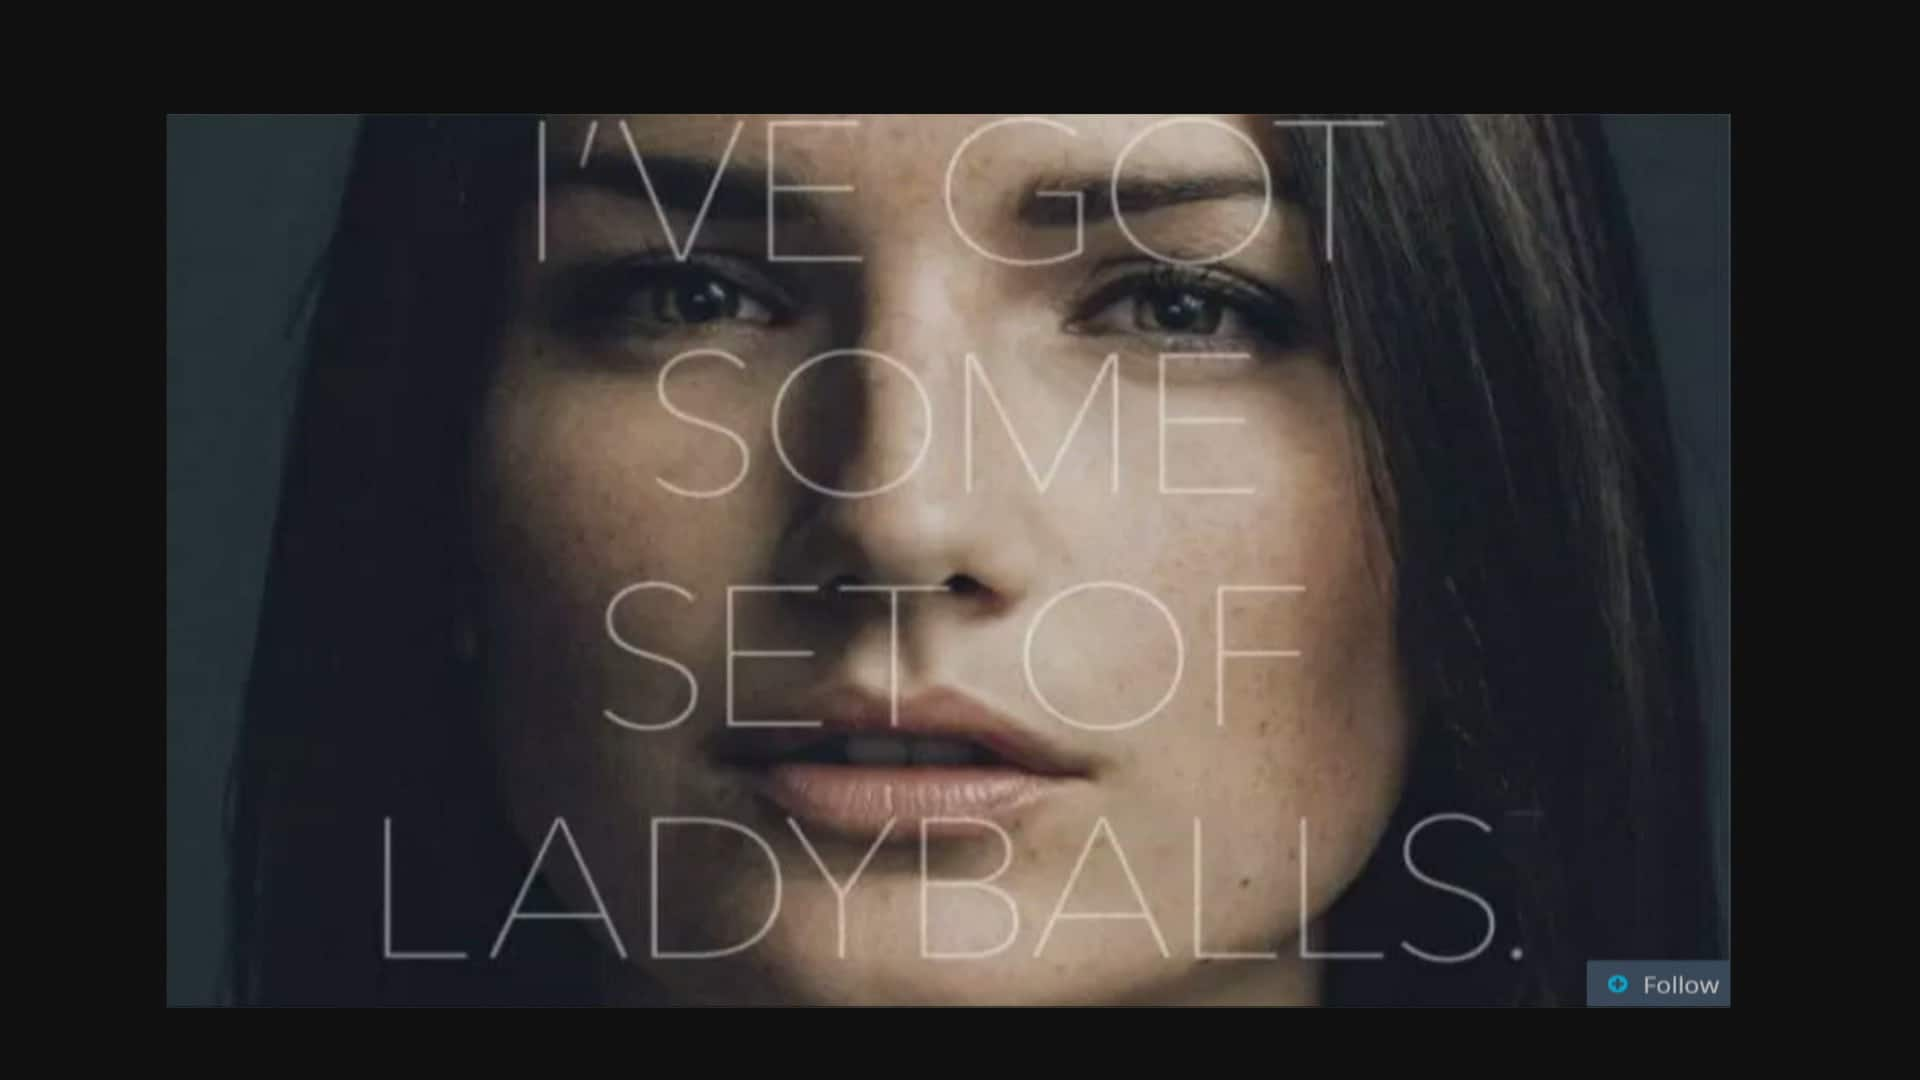 Ovarian Cancer Canada S Ladyballs Ad Offends Some Starts Conversations Cbc News